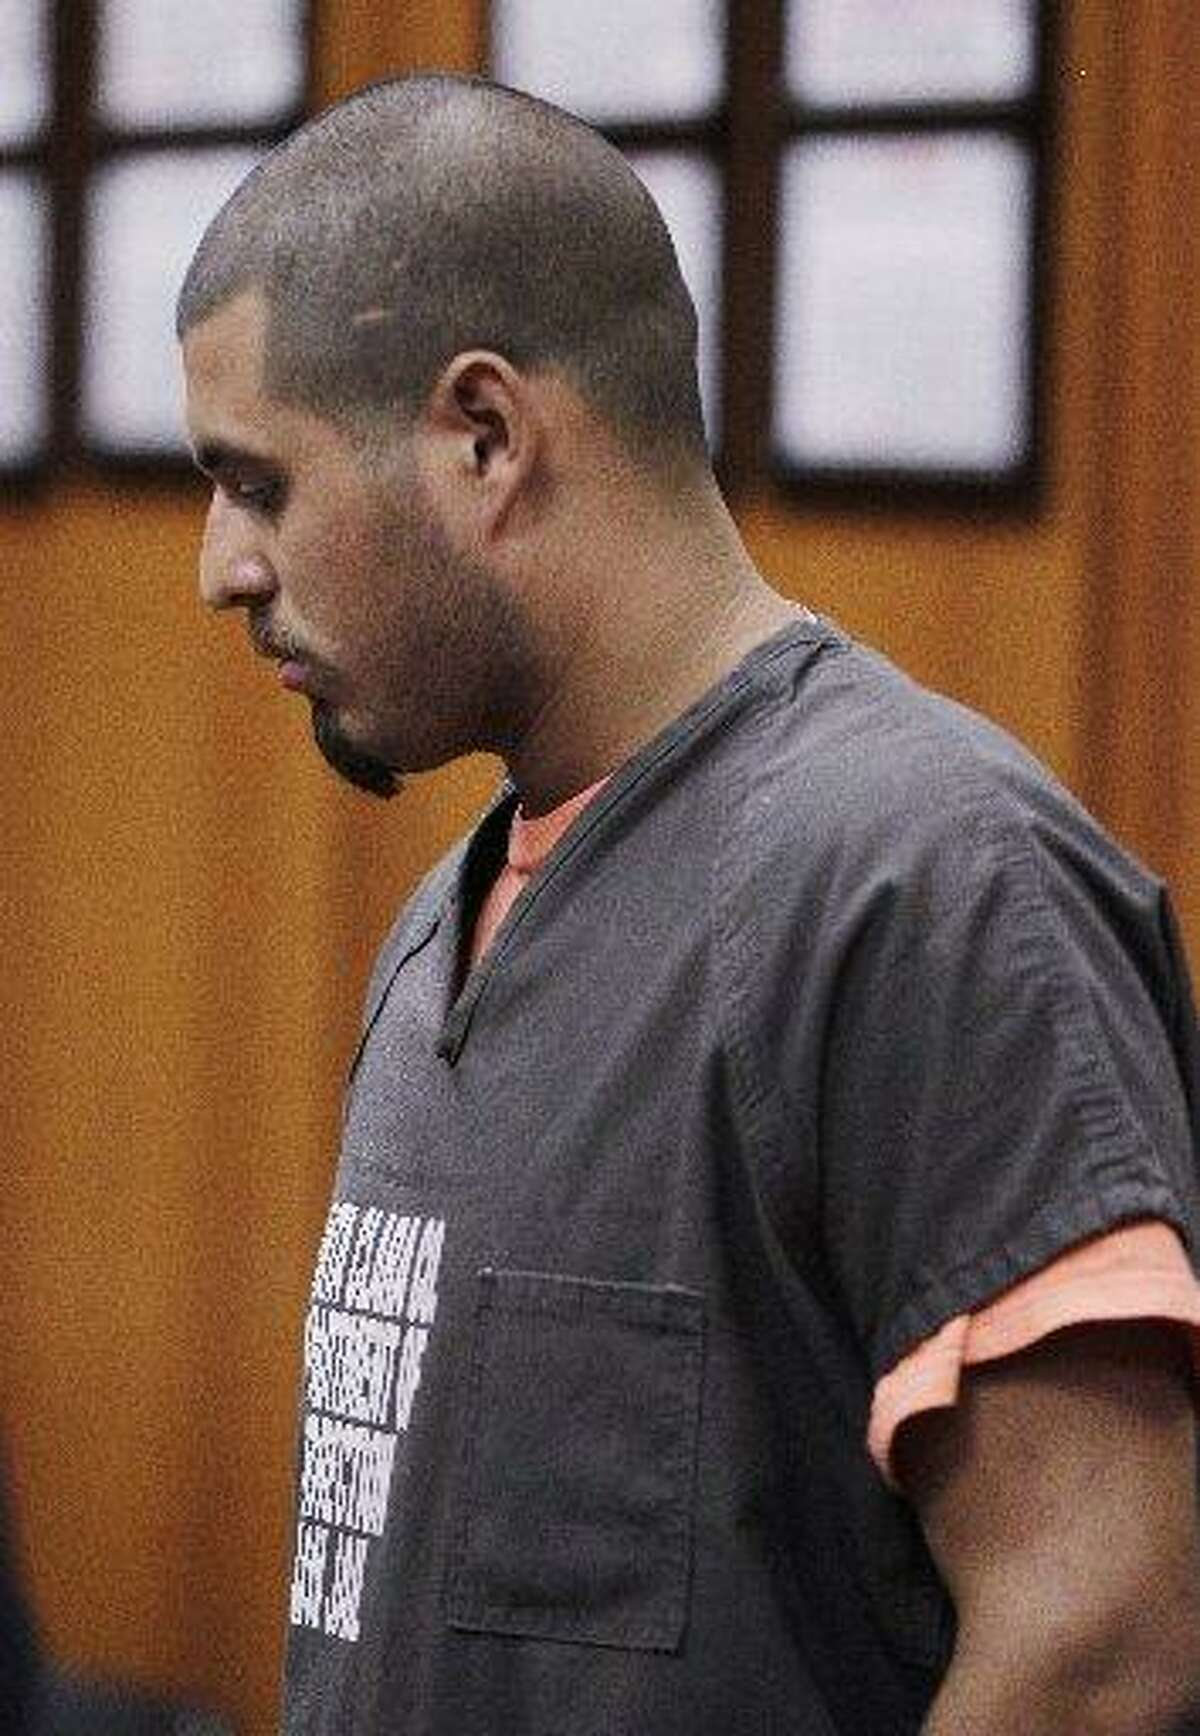 Antolin Garcia-Torres appears in a Santa Clara County courtroom in San Jose, Calif., for his first court appearance Thursday, May 24, 2012. He is accused of the kidnapping and murder of 15-year-old Sierra Lamar in Morgan Hill, Calif. She was last seen on March 16, 2012.